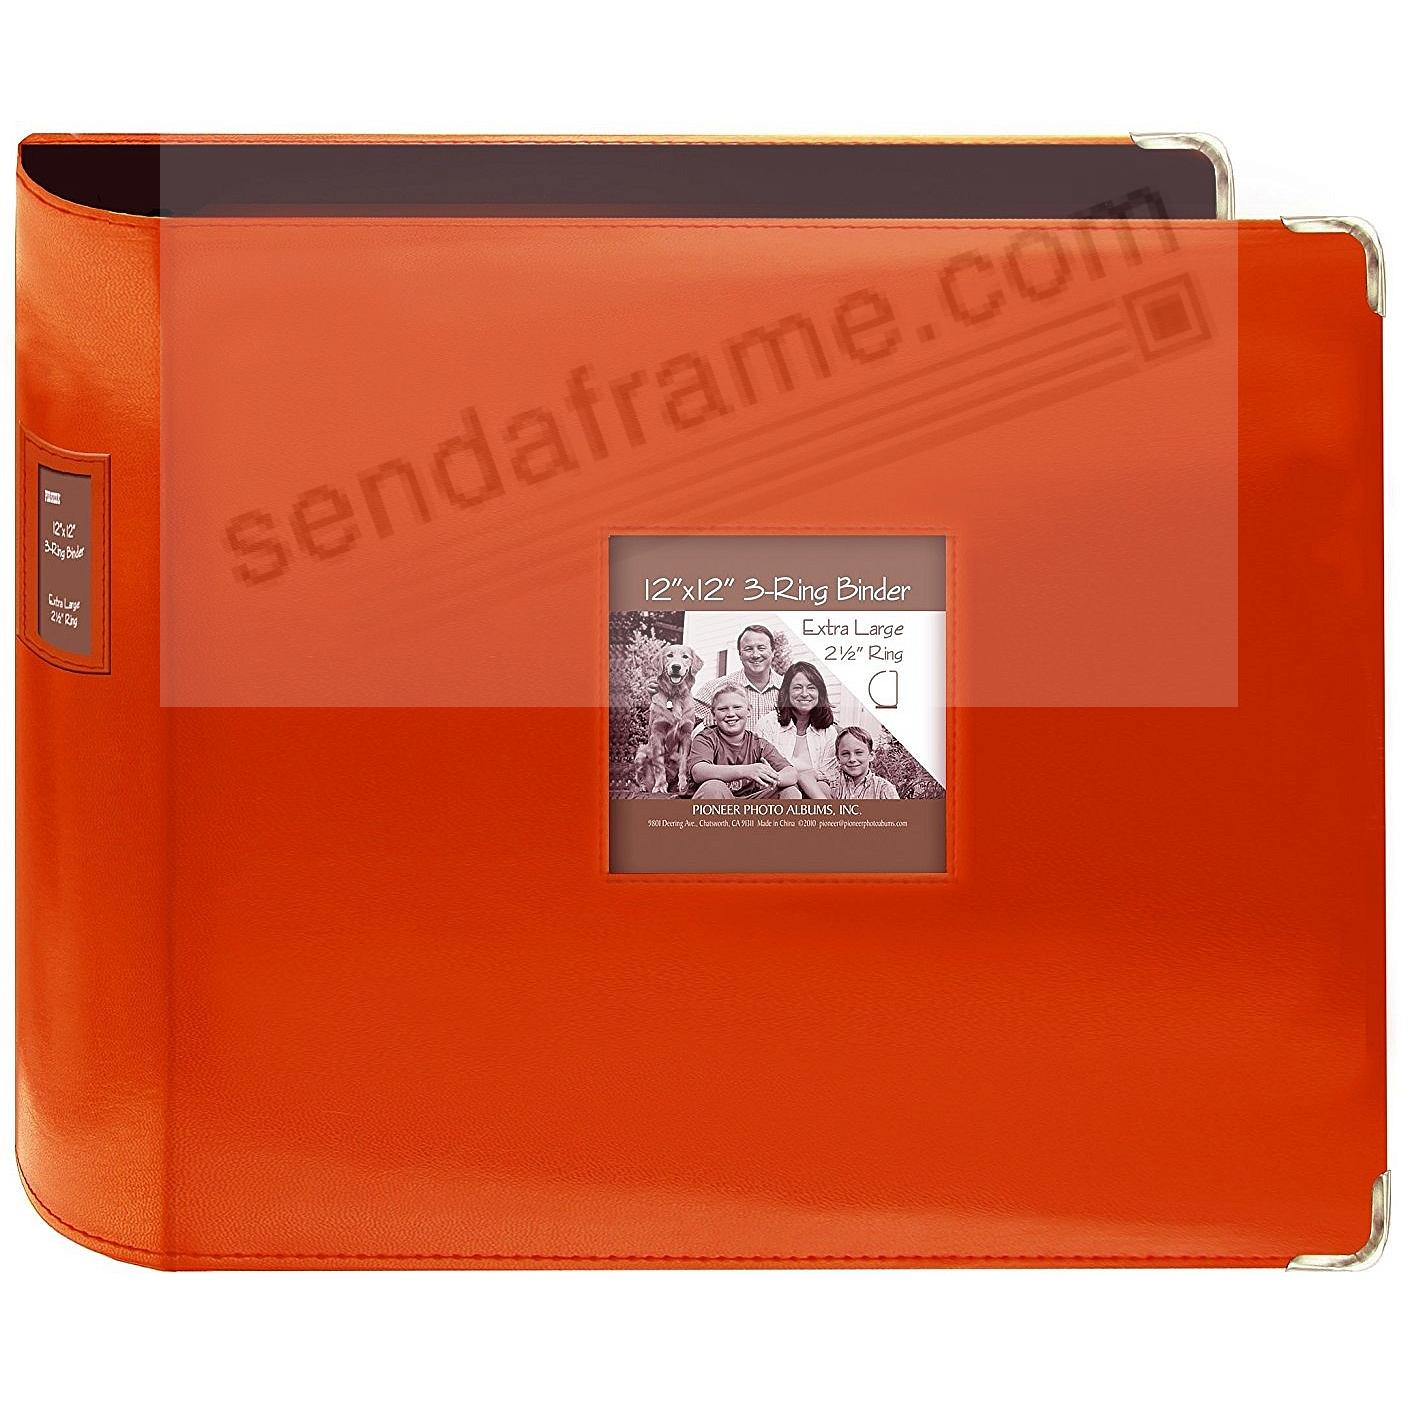 Sewn Leatherette 3-Ring Binder (unfilled) BRIGHT-ORANGE by Pioneer®